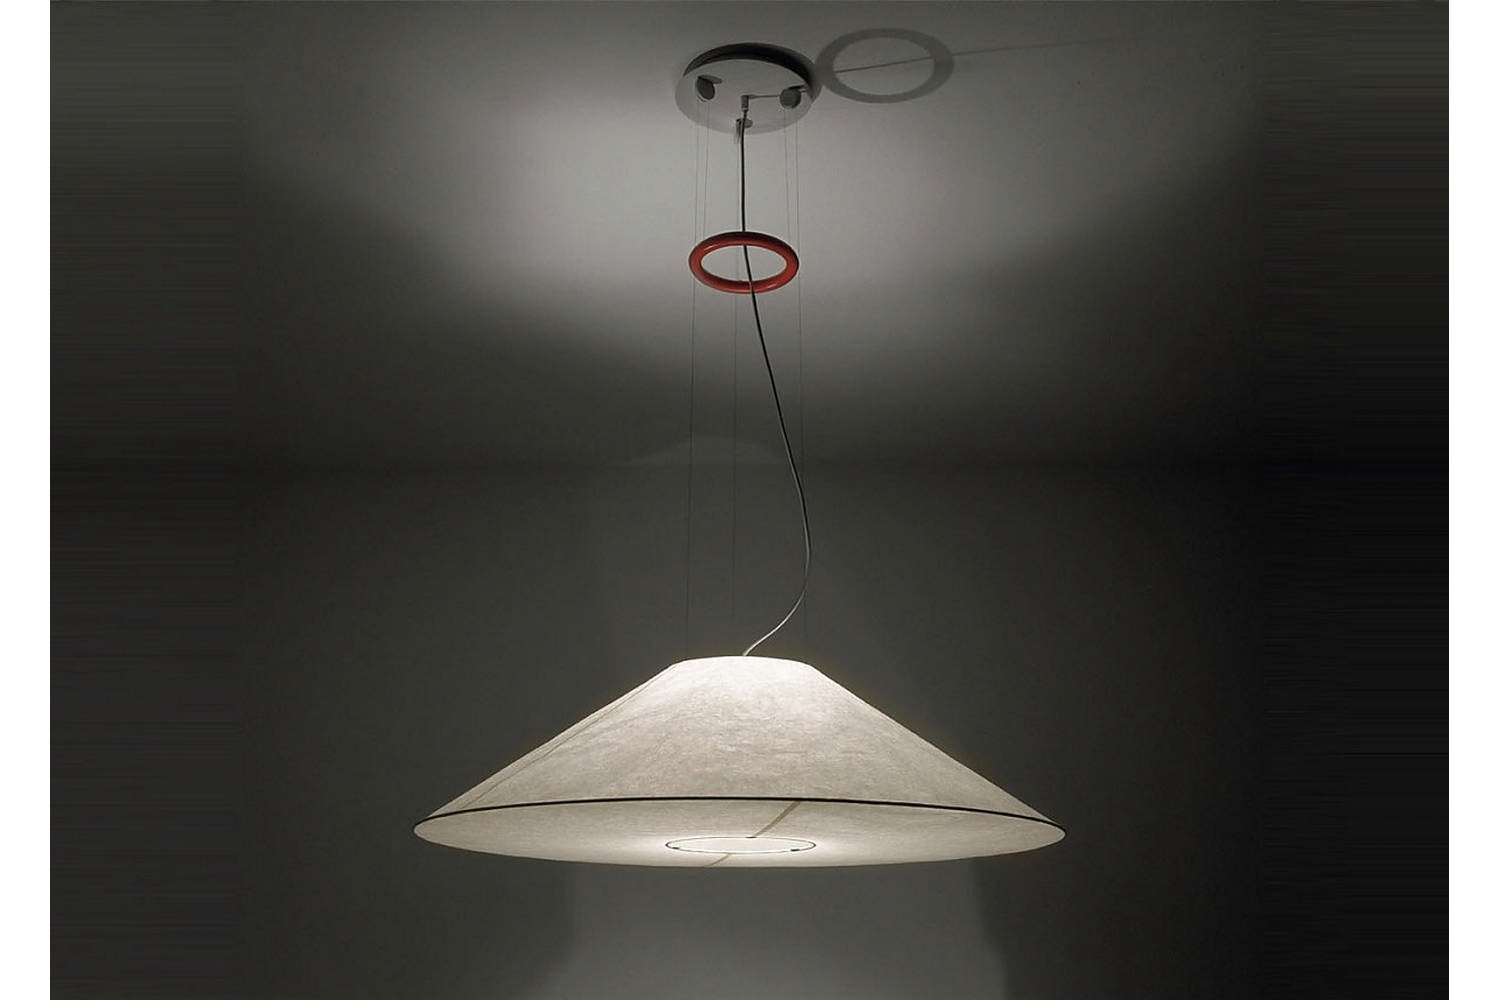 Maru Suspension Lamp by Ingo Maurer for Ingo Maurer